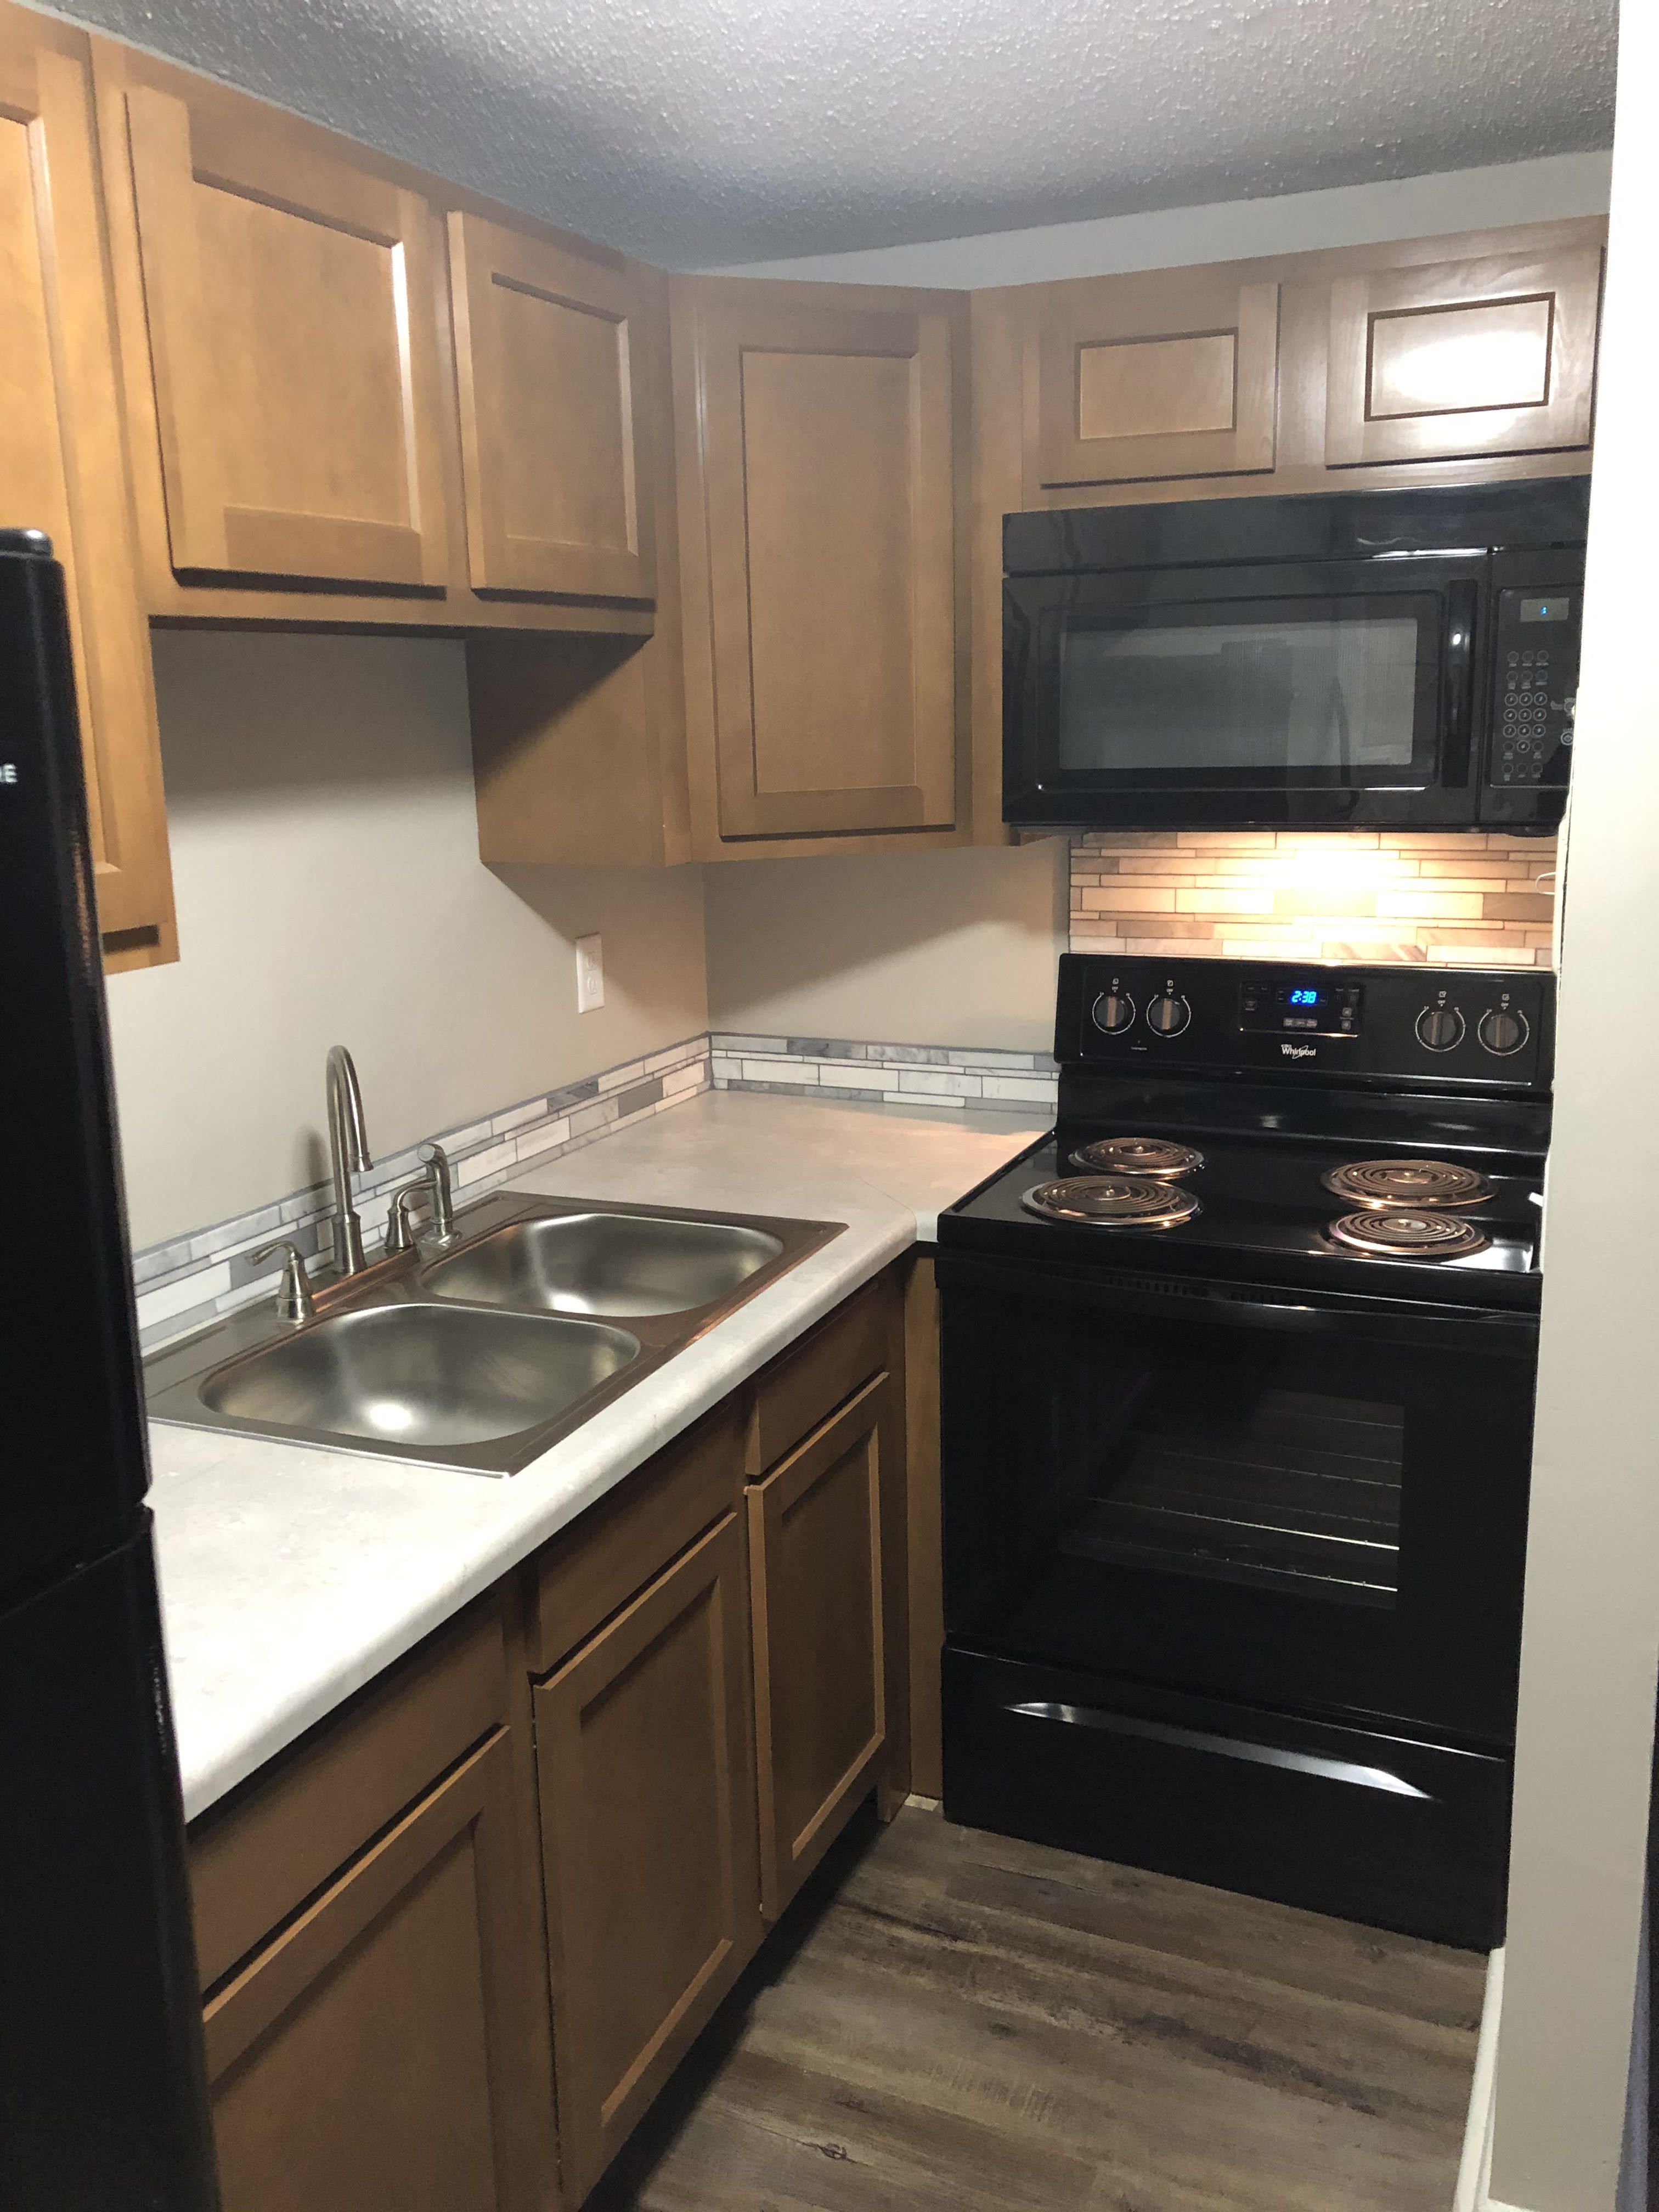 Newly renovated kitchen with black appliances and light brown cabinets